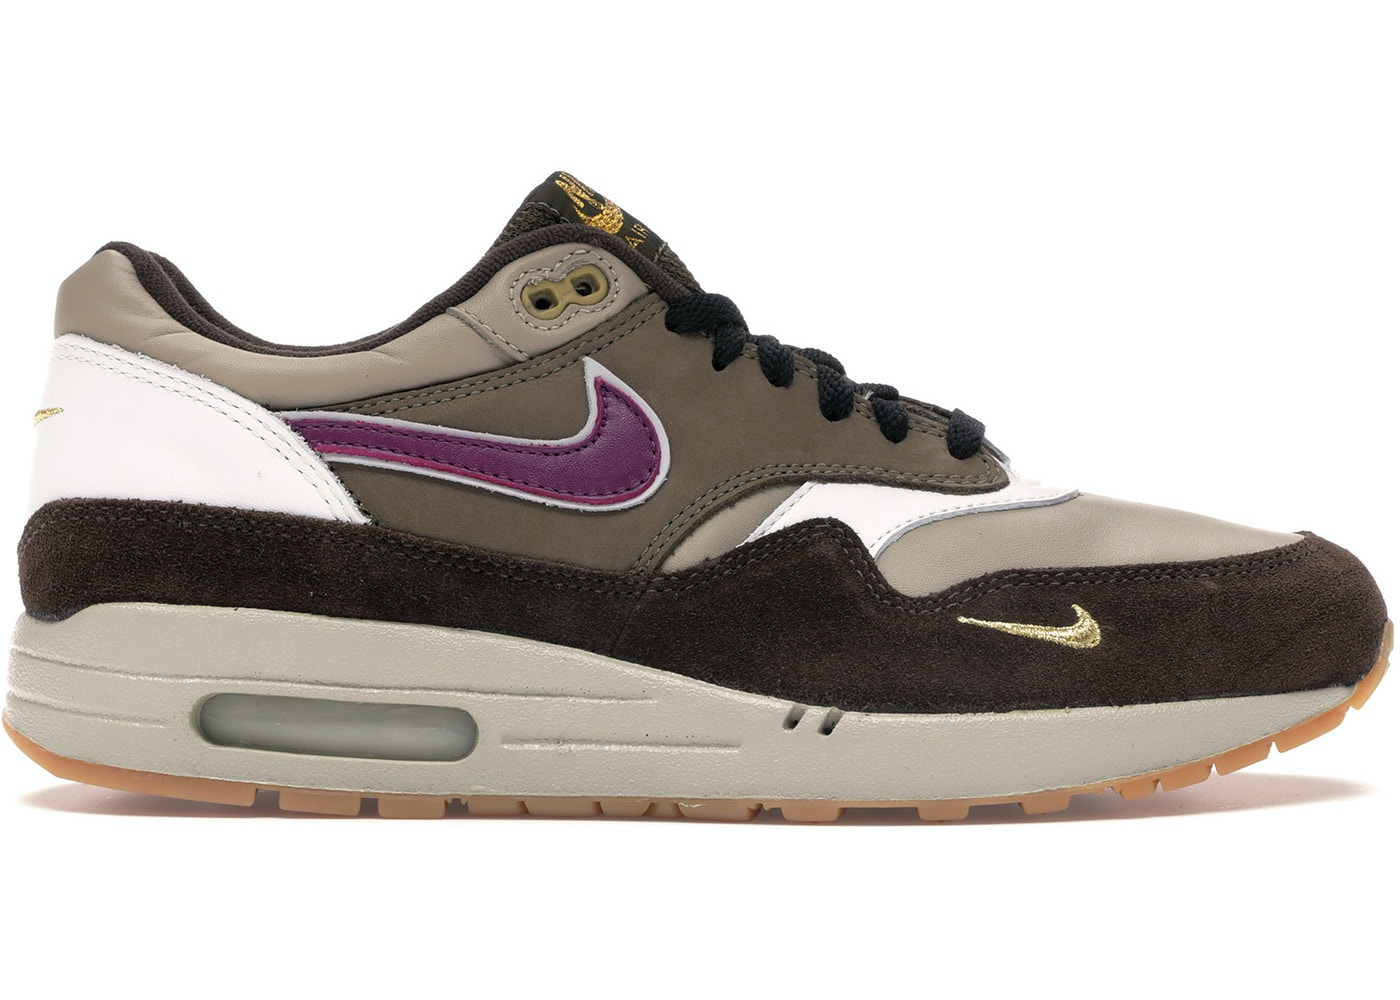 buy popular ab89a 051b3 Air Max 1 B Atmos Viotech - 302740-251